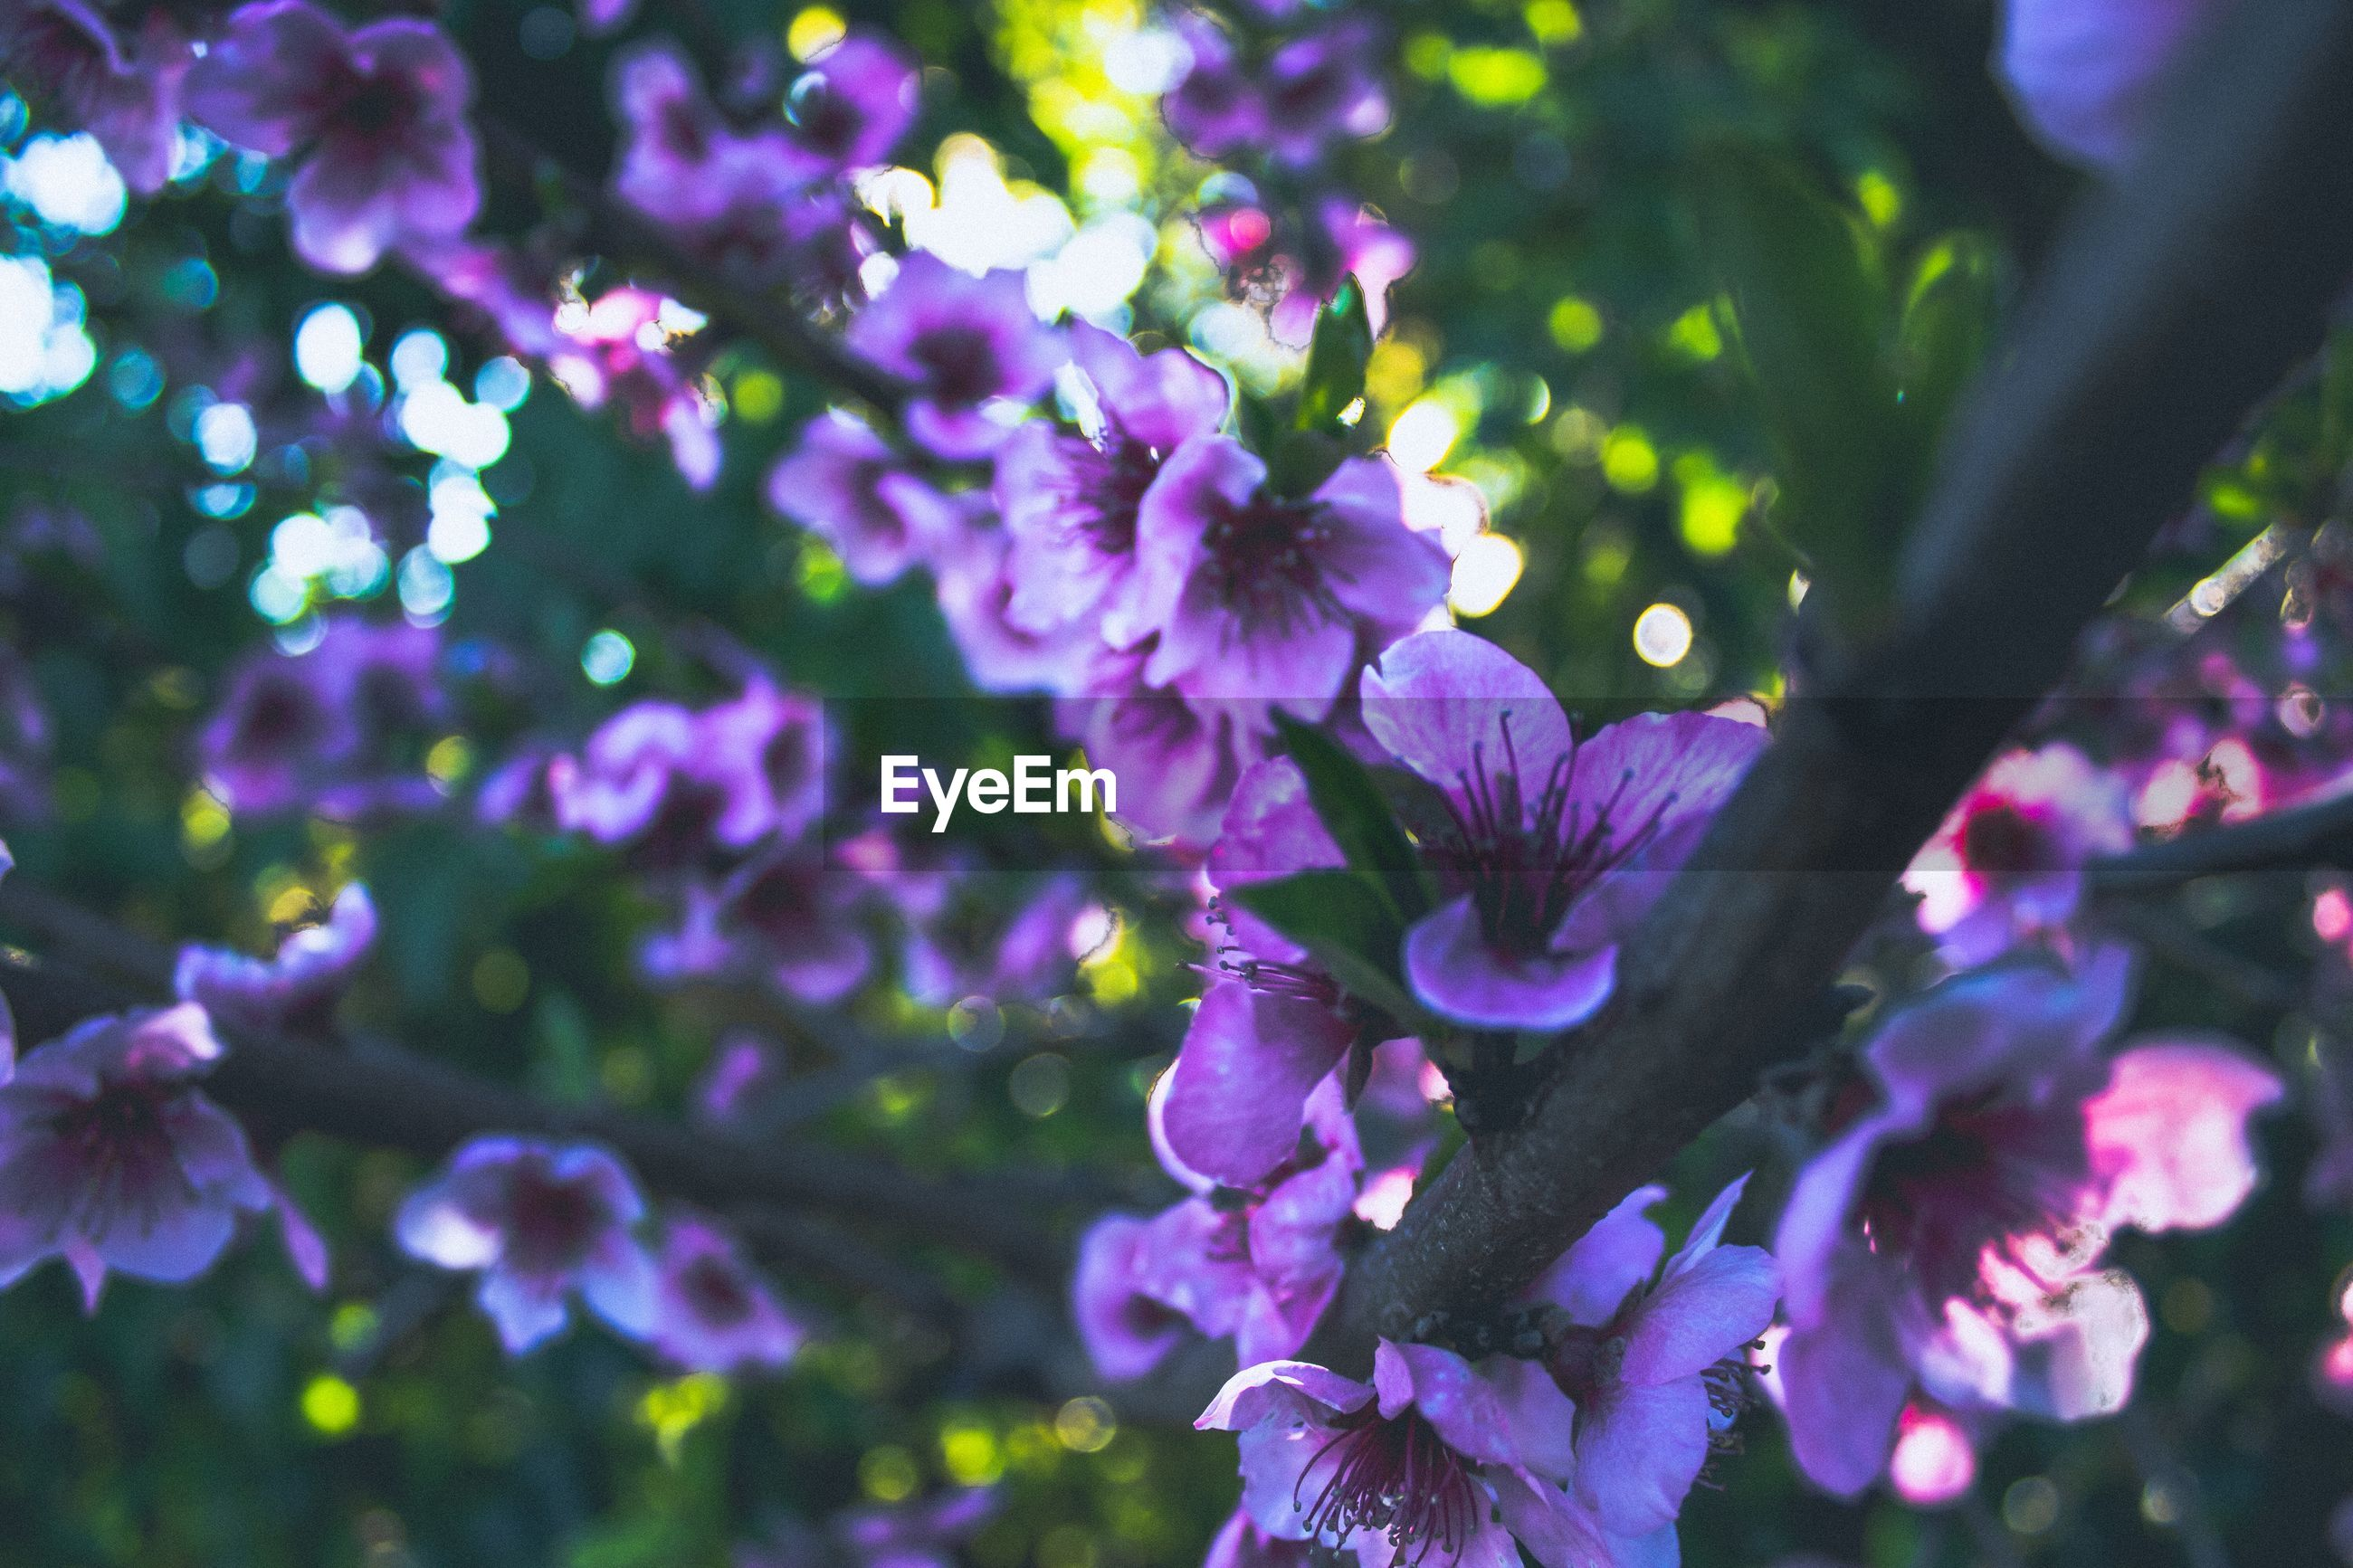 CLOSE-UP OF PURPLE FLOWERS ON BRANCH